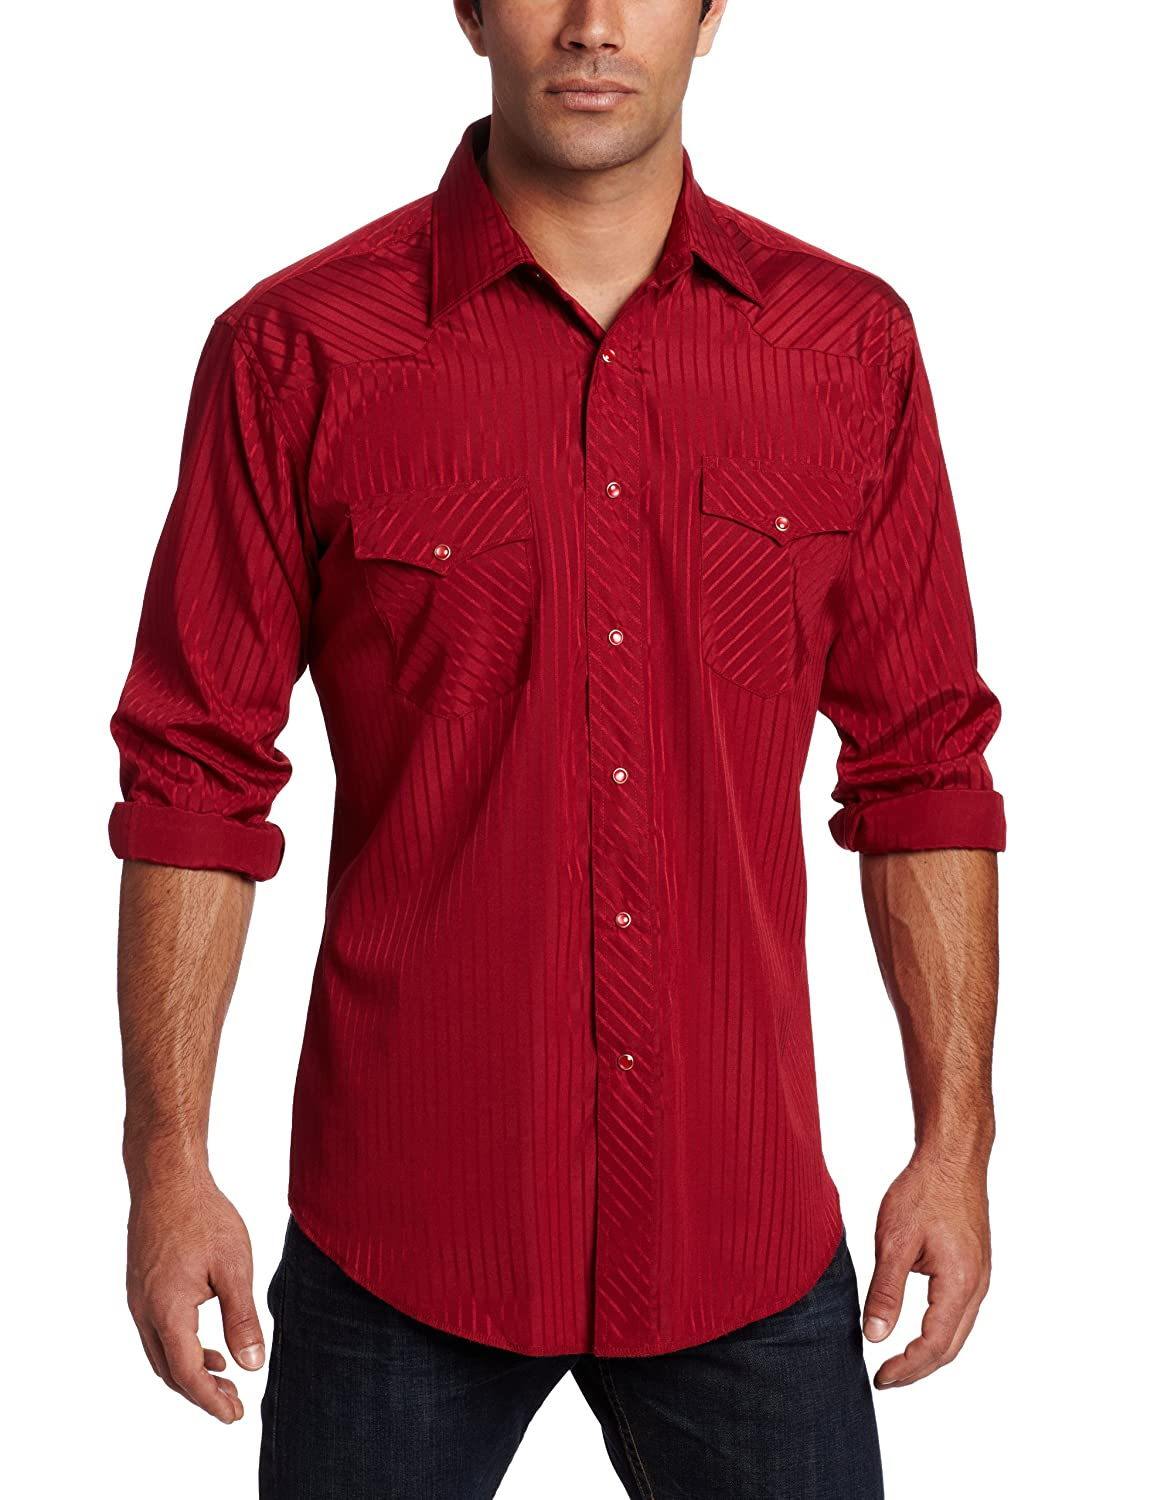 Wrangler Mens Tall Tall Sport Western Snap Shirt in Dobby Stripe Wrangler - MEN' S 75214BKT